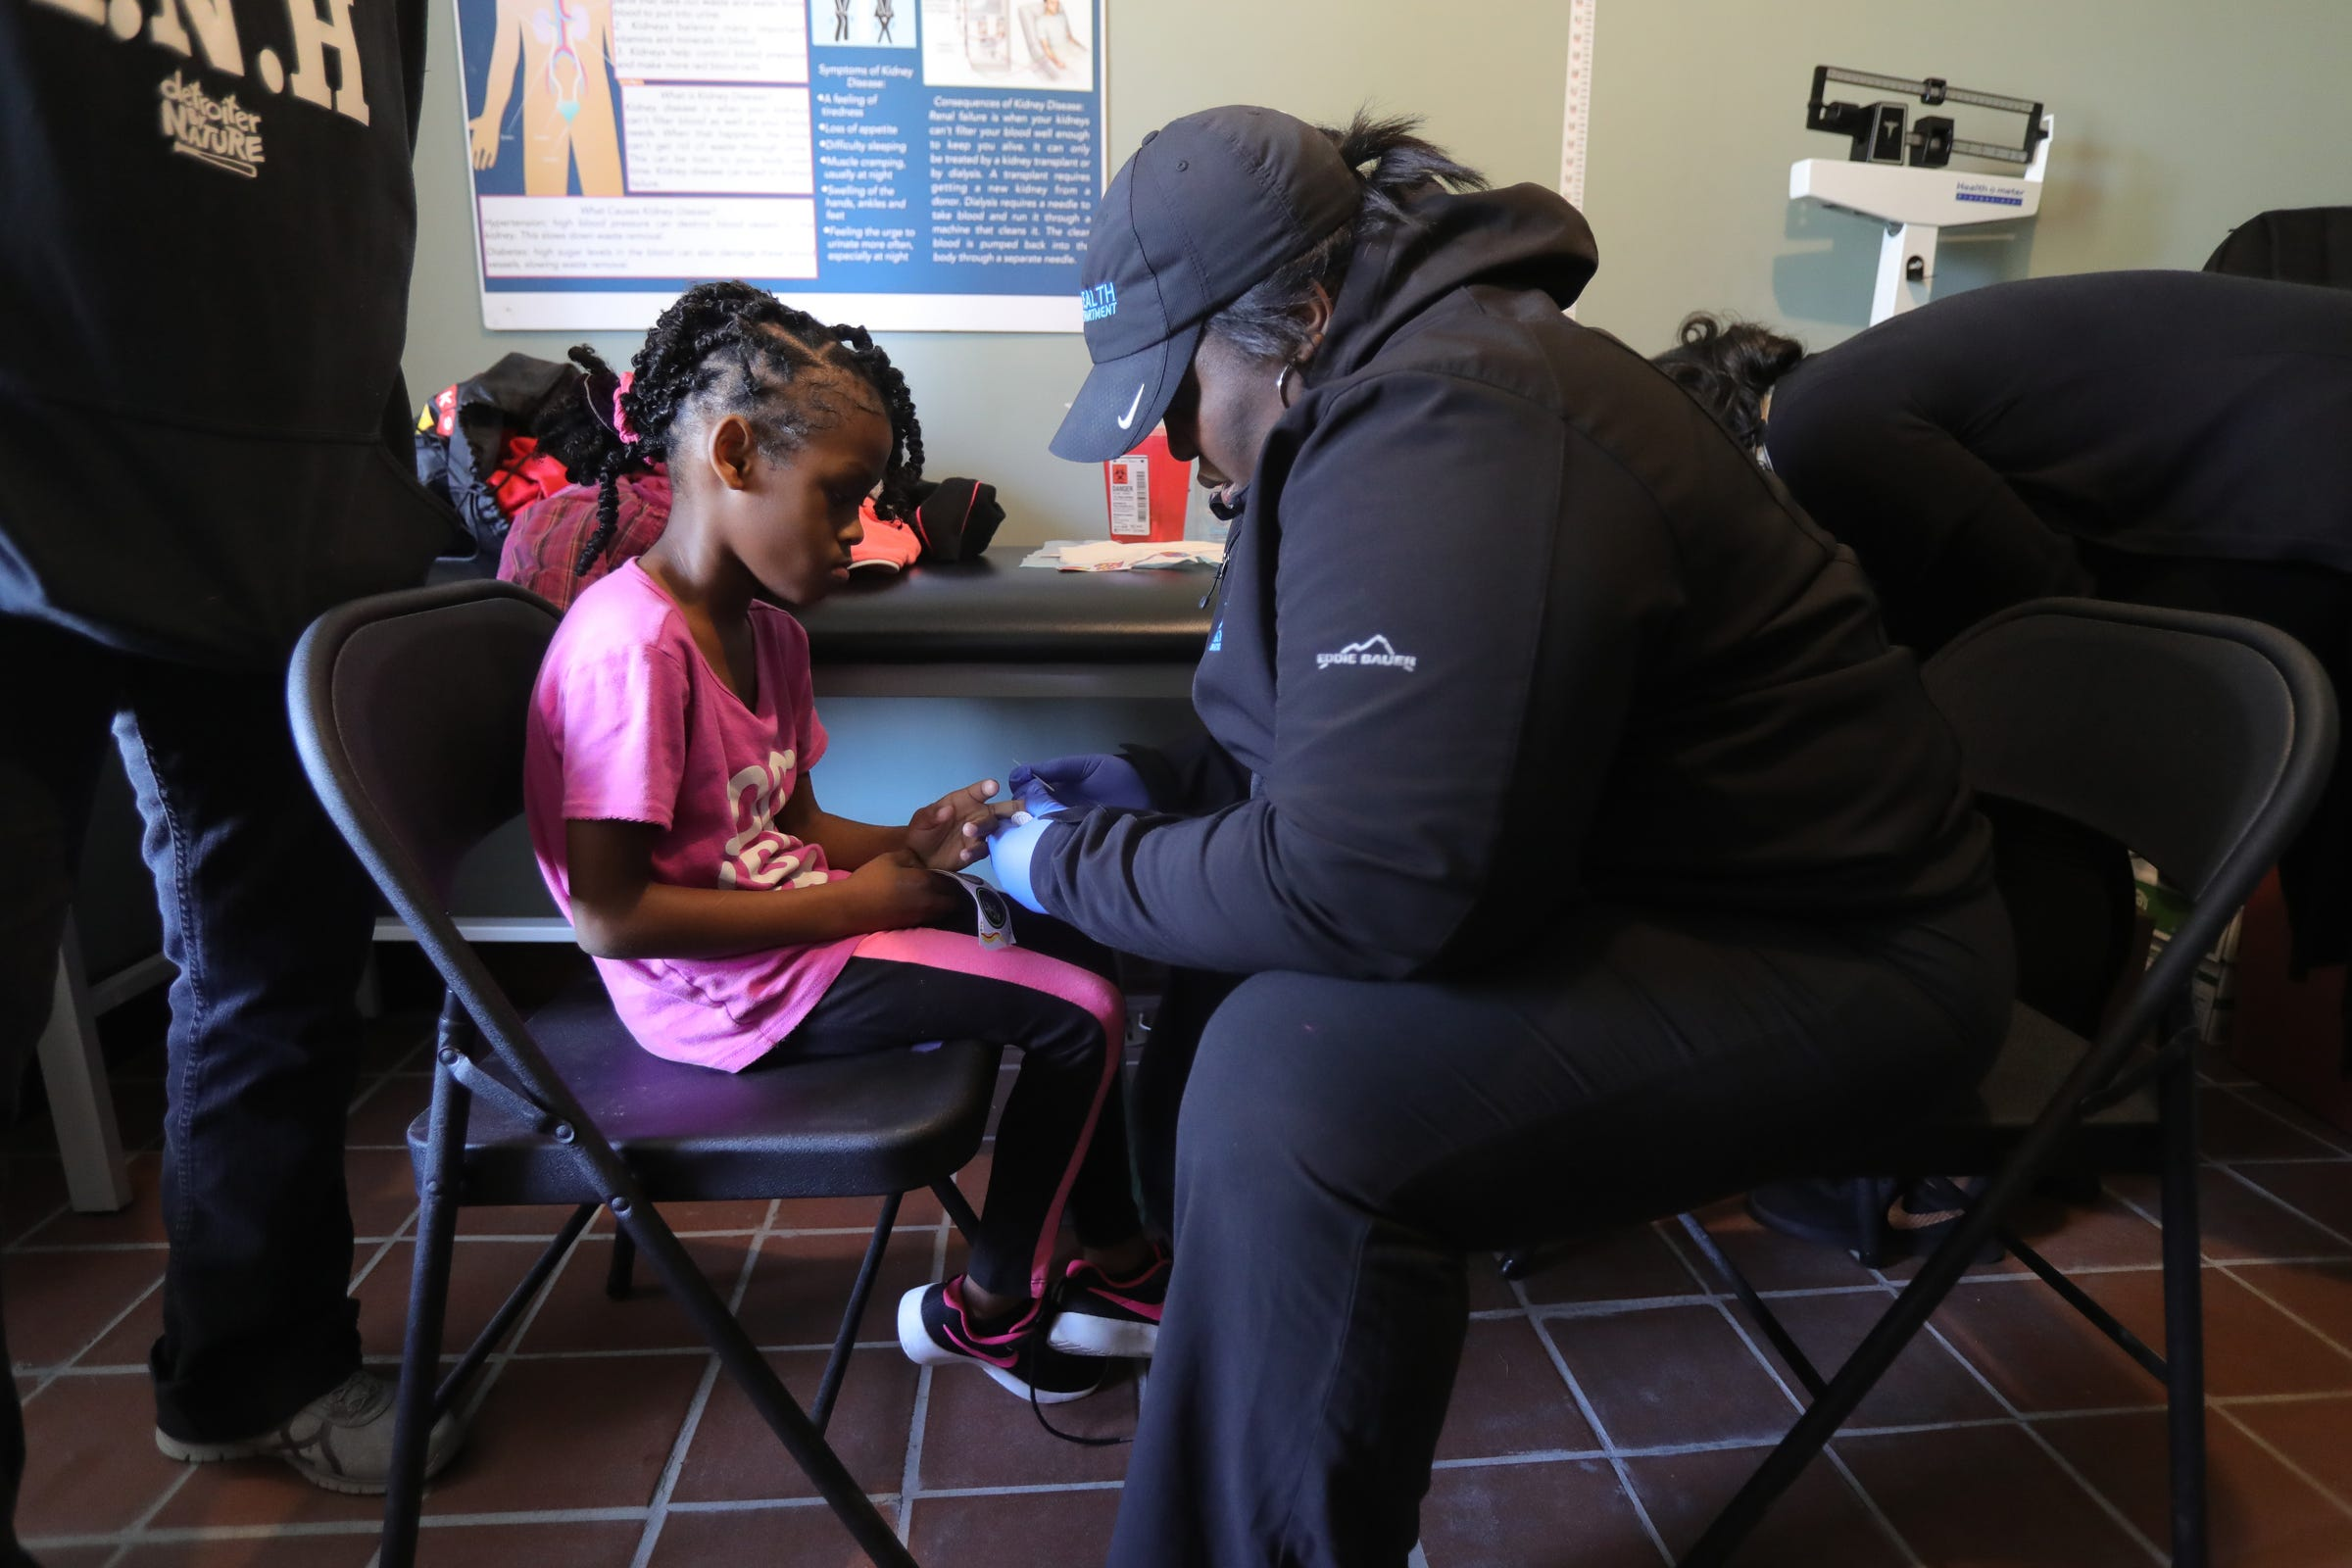 Ashleigh Adams, a city health department employee, tests the lead levels of Lyriq Wilson during a community bazaar put on by Sonia Brown, also known as Auntie Na, on Saturday, Oct. 19, 2019 in Detroit.